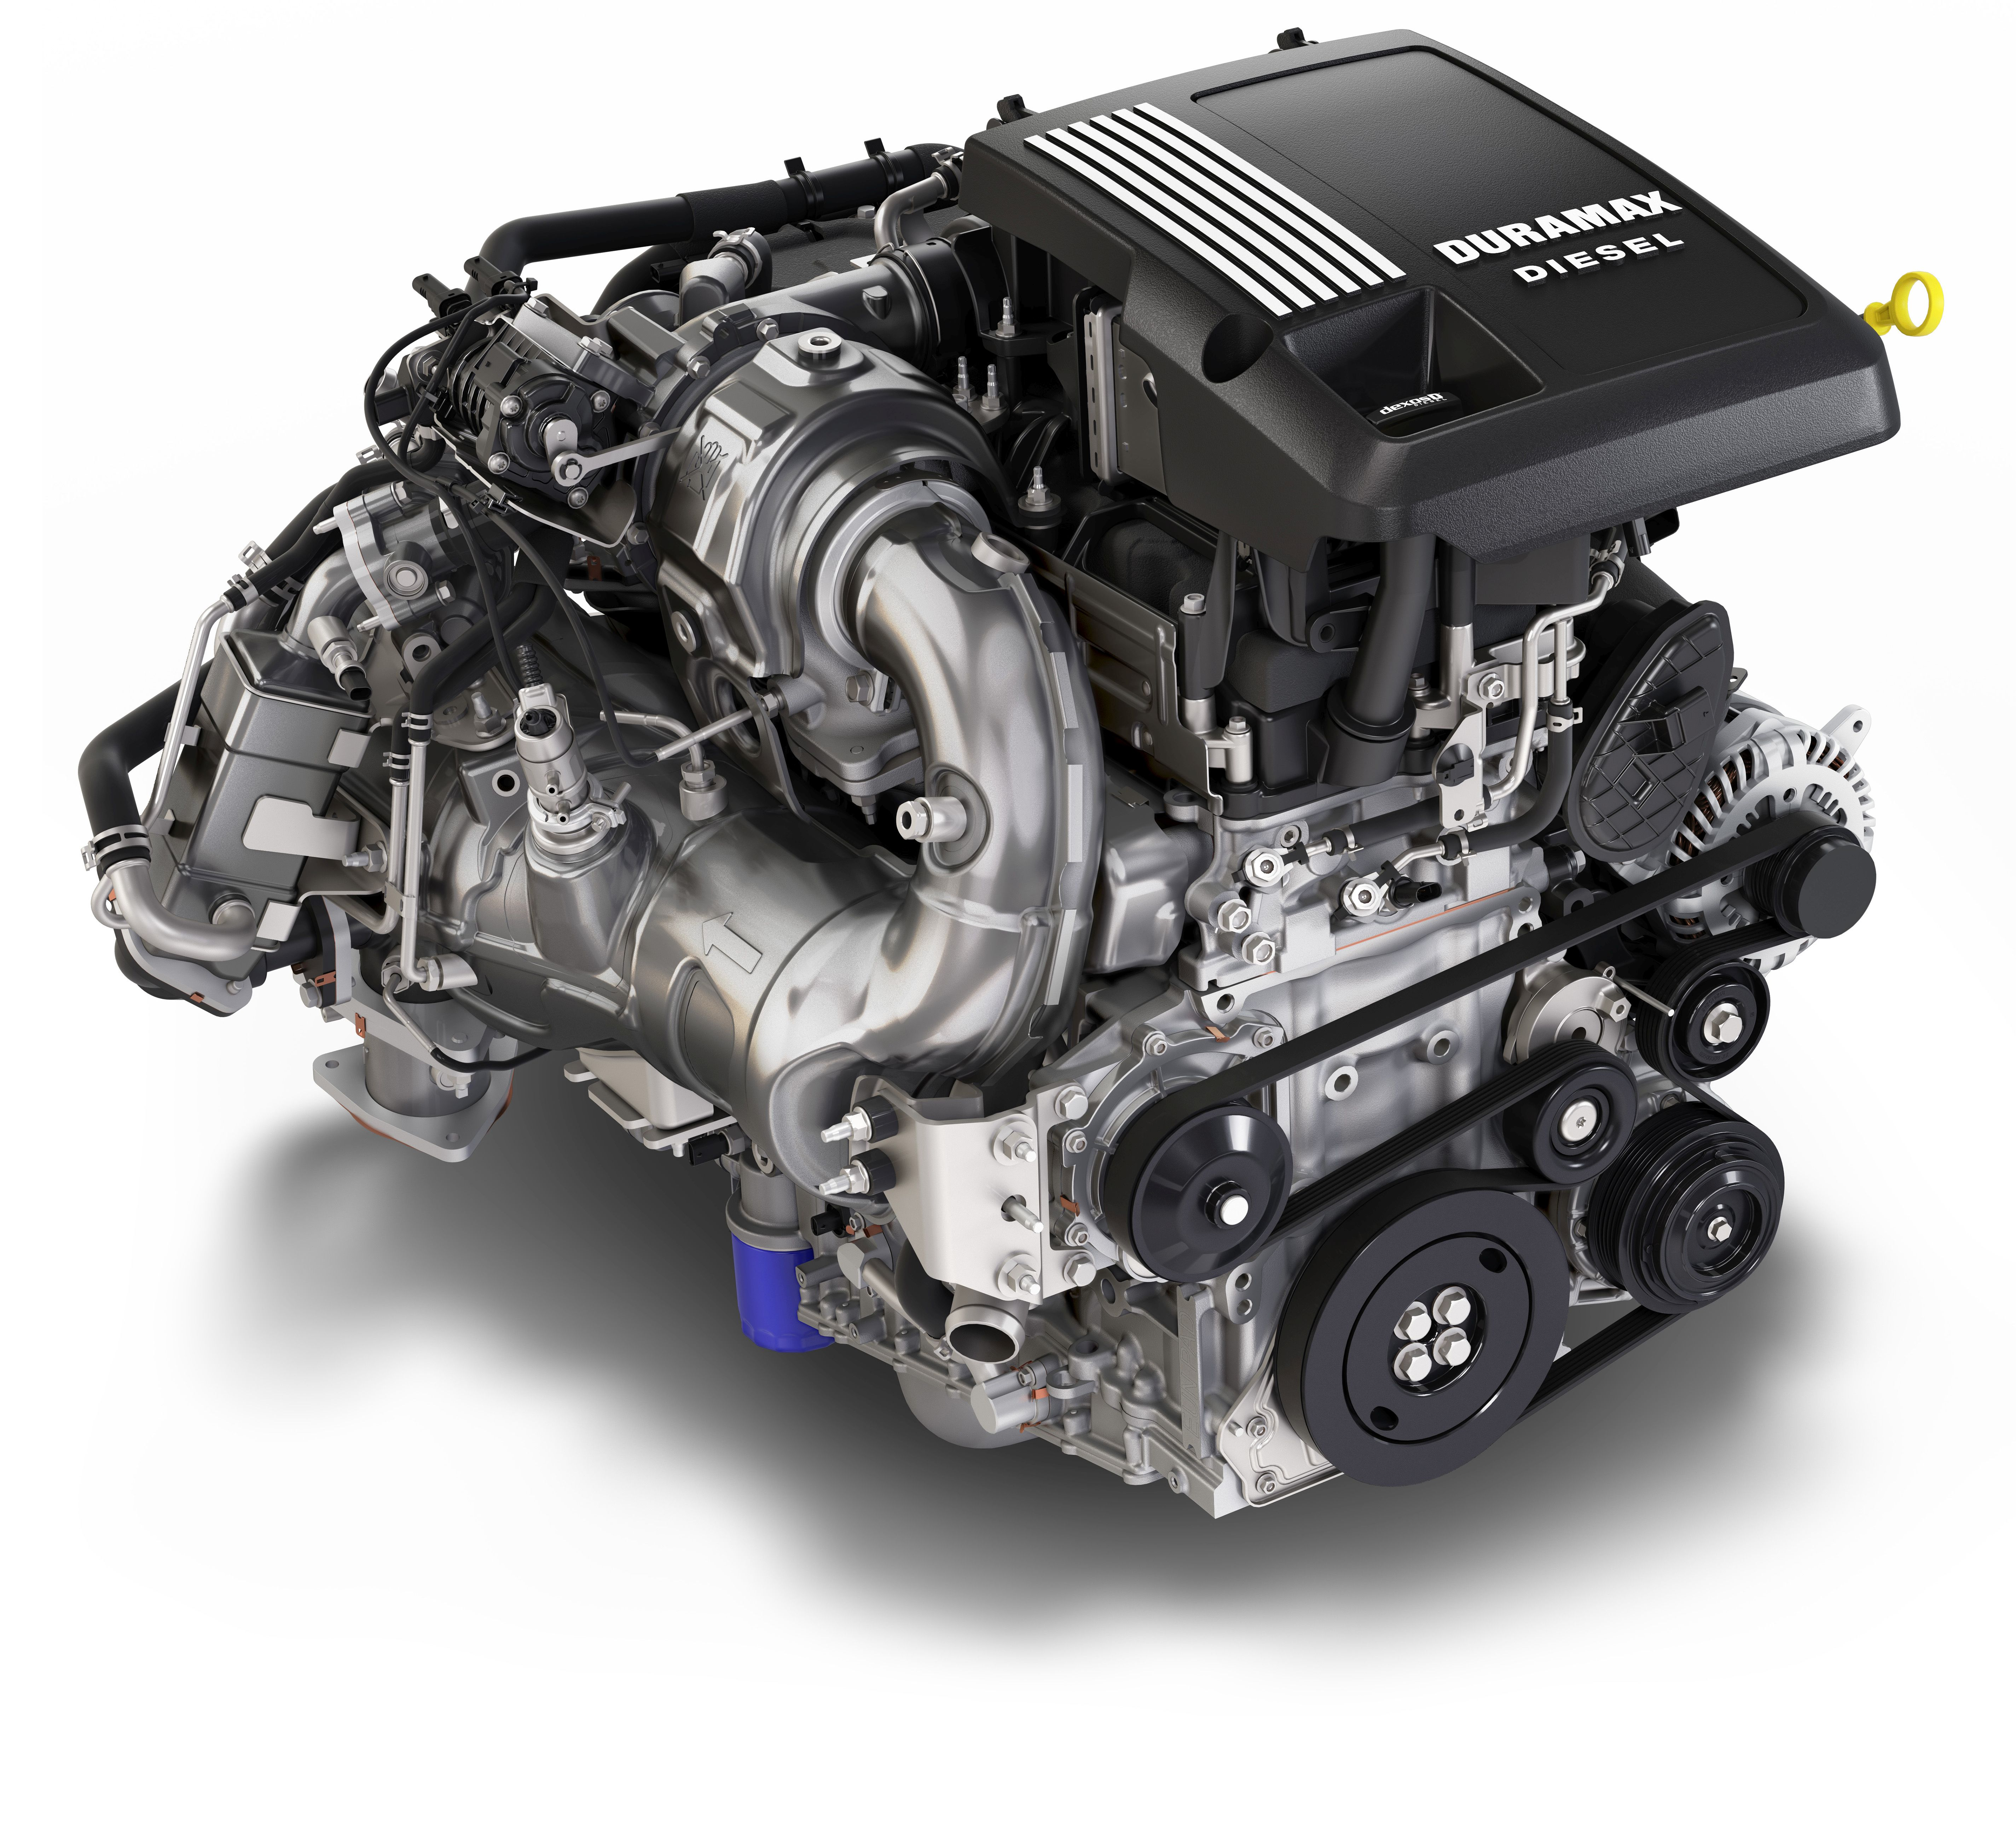 Chevrolet Details 2020 Silverado 1500's New Diesel Engine ...